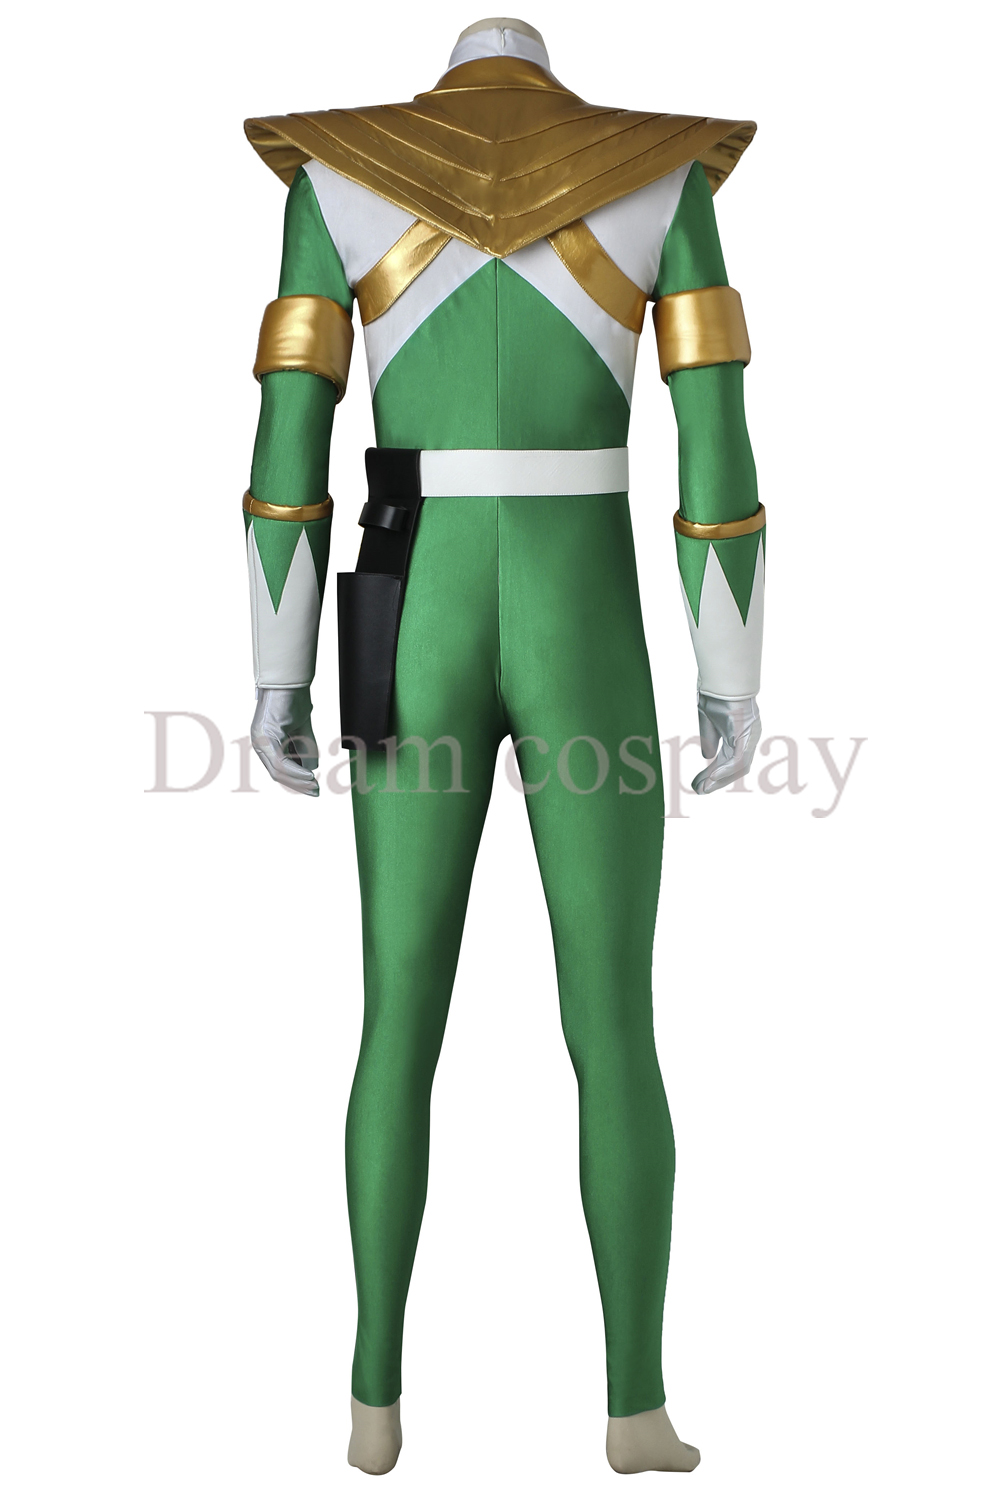 Customized Costume For Burai Dragon Ranger Jumpsuit Zyuranger Green Outfit  Onesies Cosplay Clothes Halloween Costume Adult Men-in Movie   TV costumes  from ... a32fa5fb7